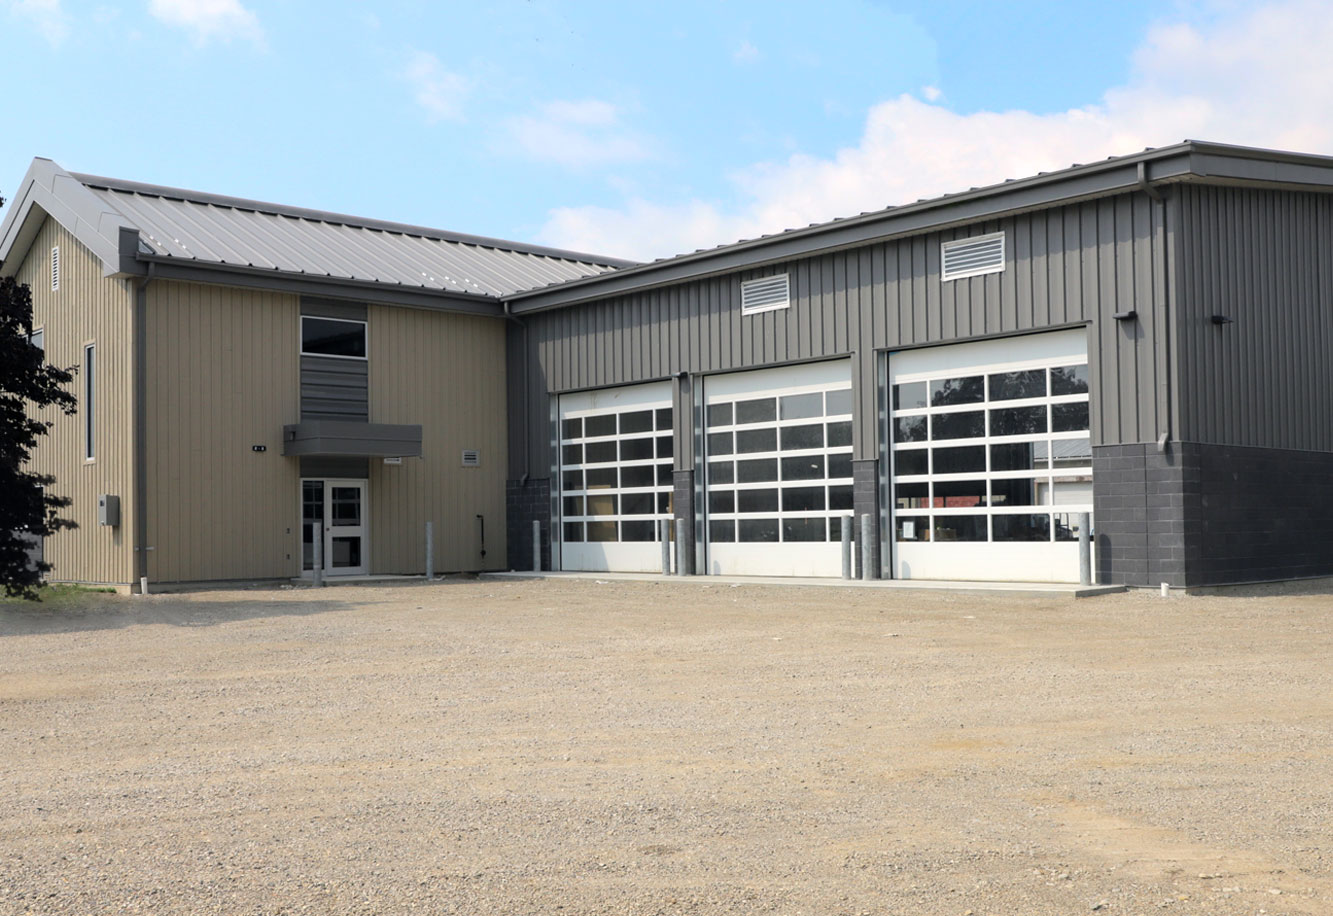 County Brant Fire Stations Project Picture